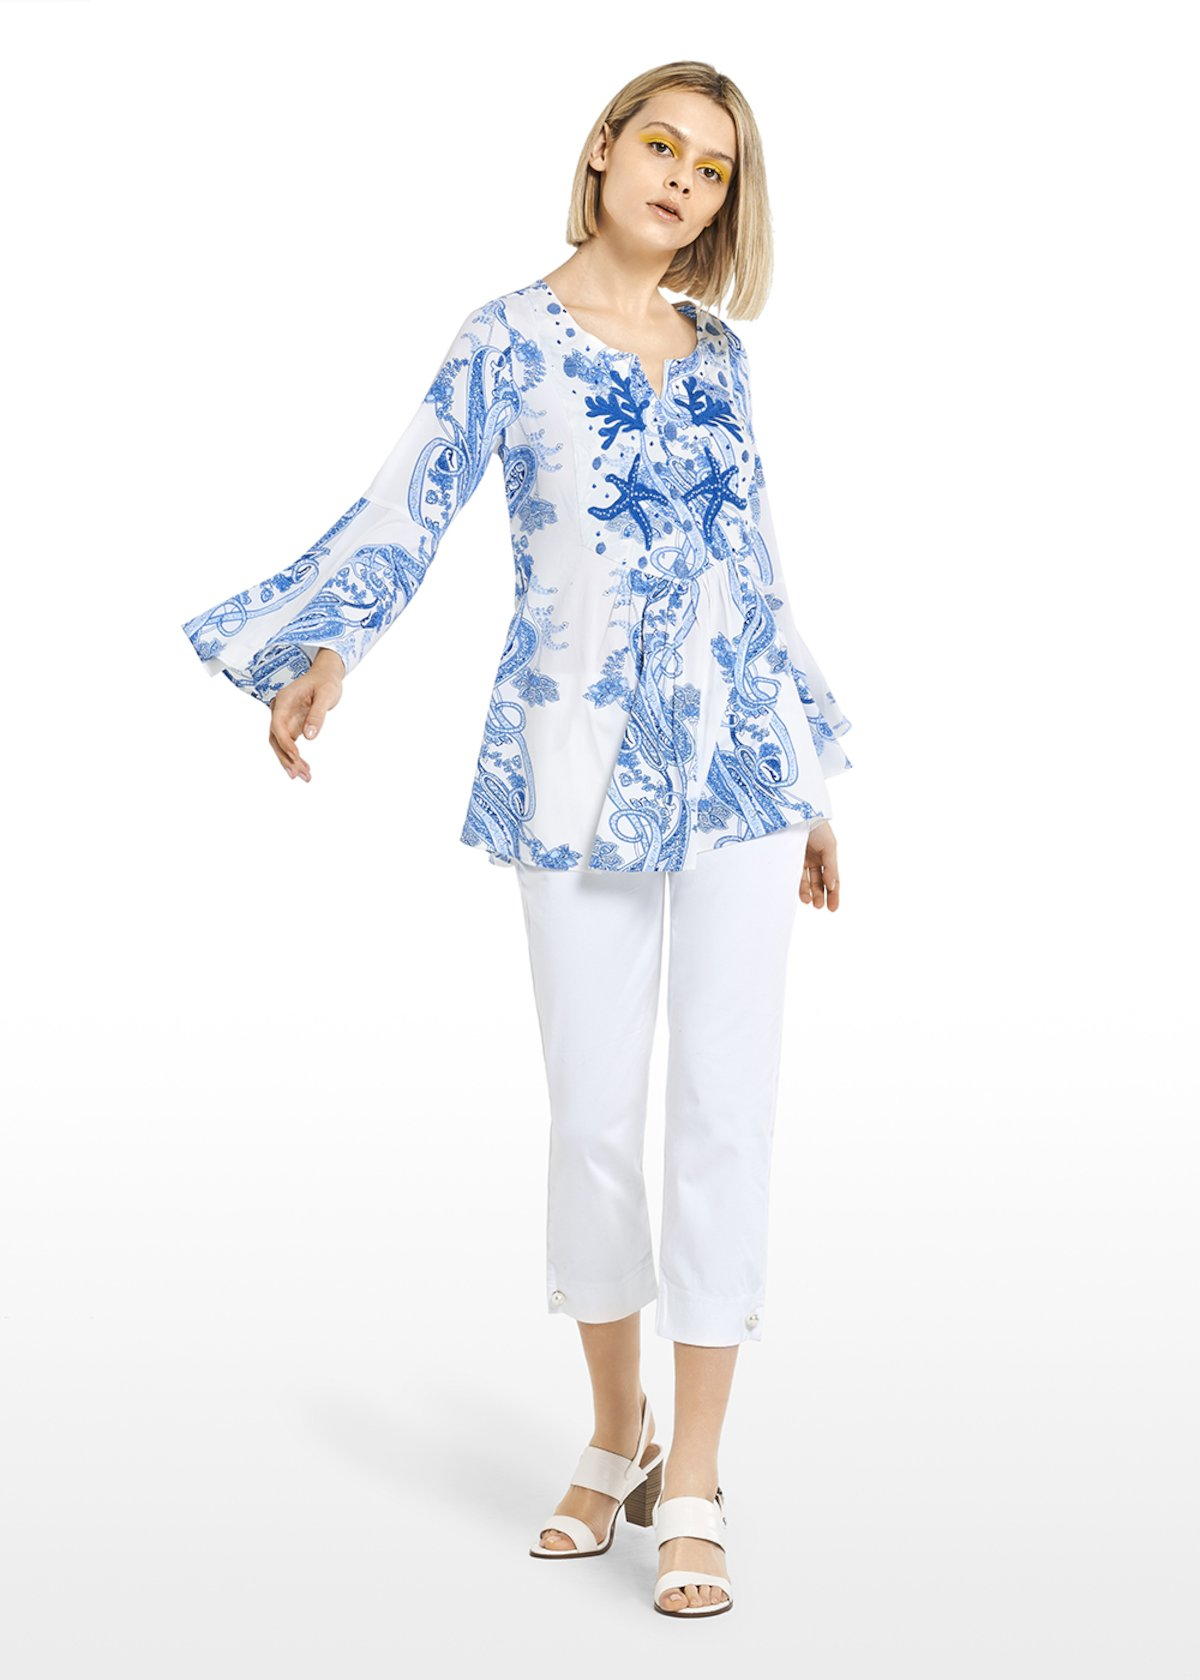 Chrissy-neck blouse with embroidery and beads - White\ Mineral\ Fantasia - Woman - Category image